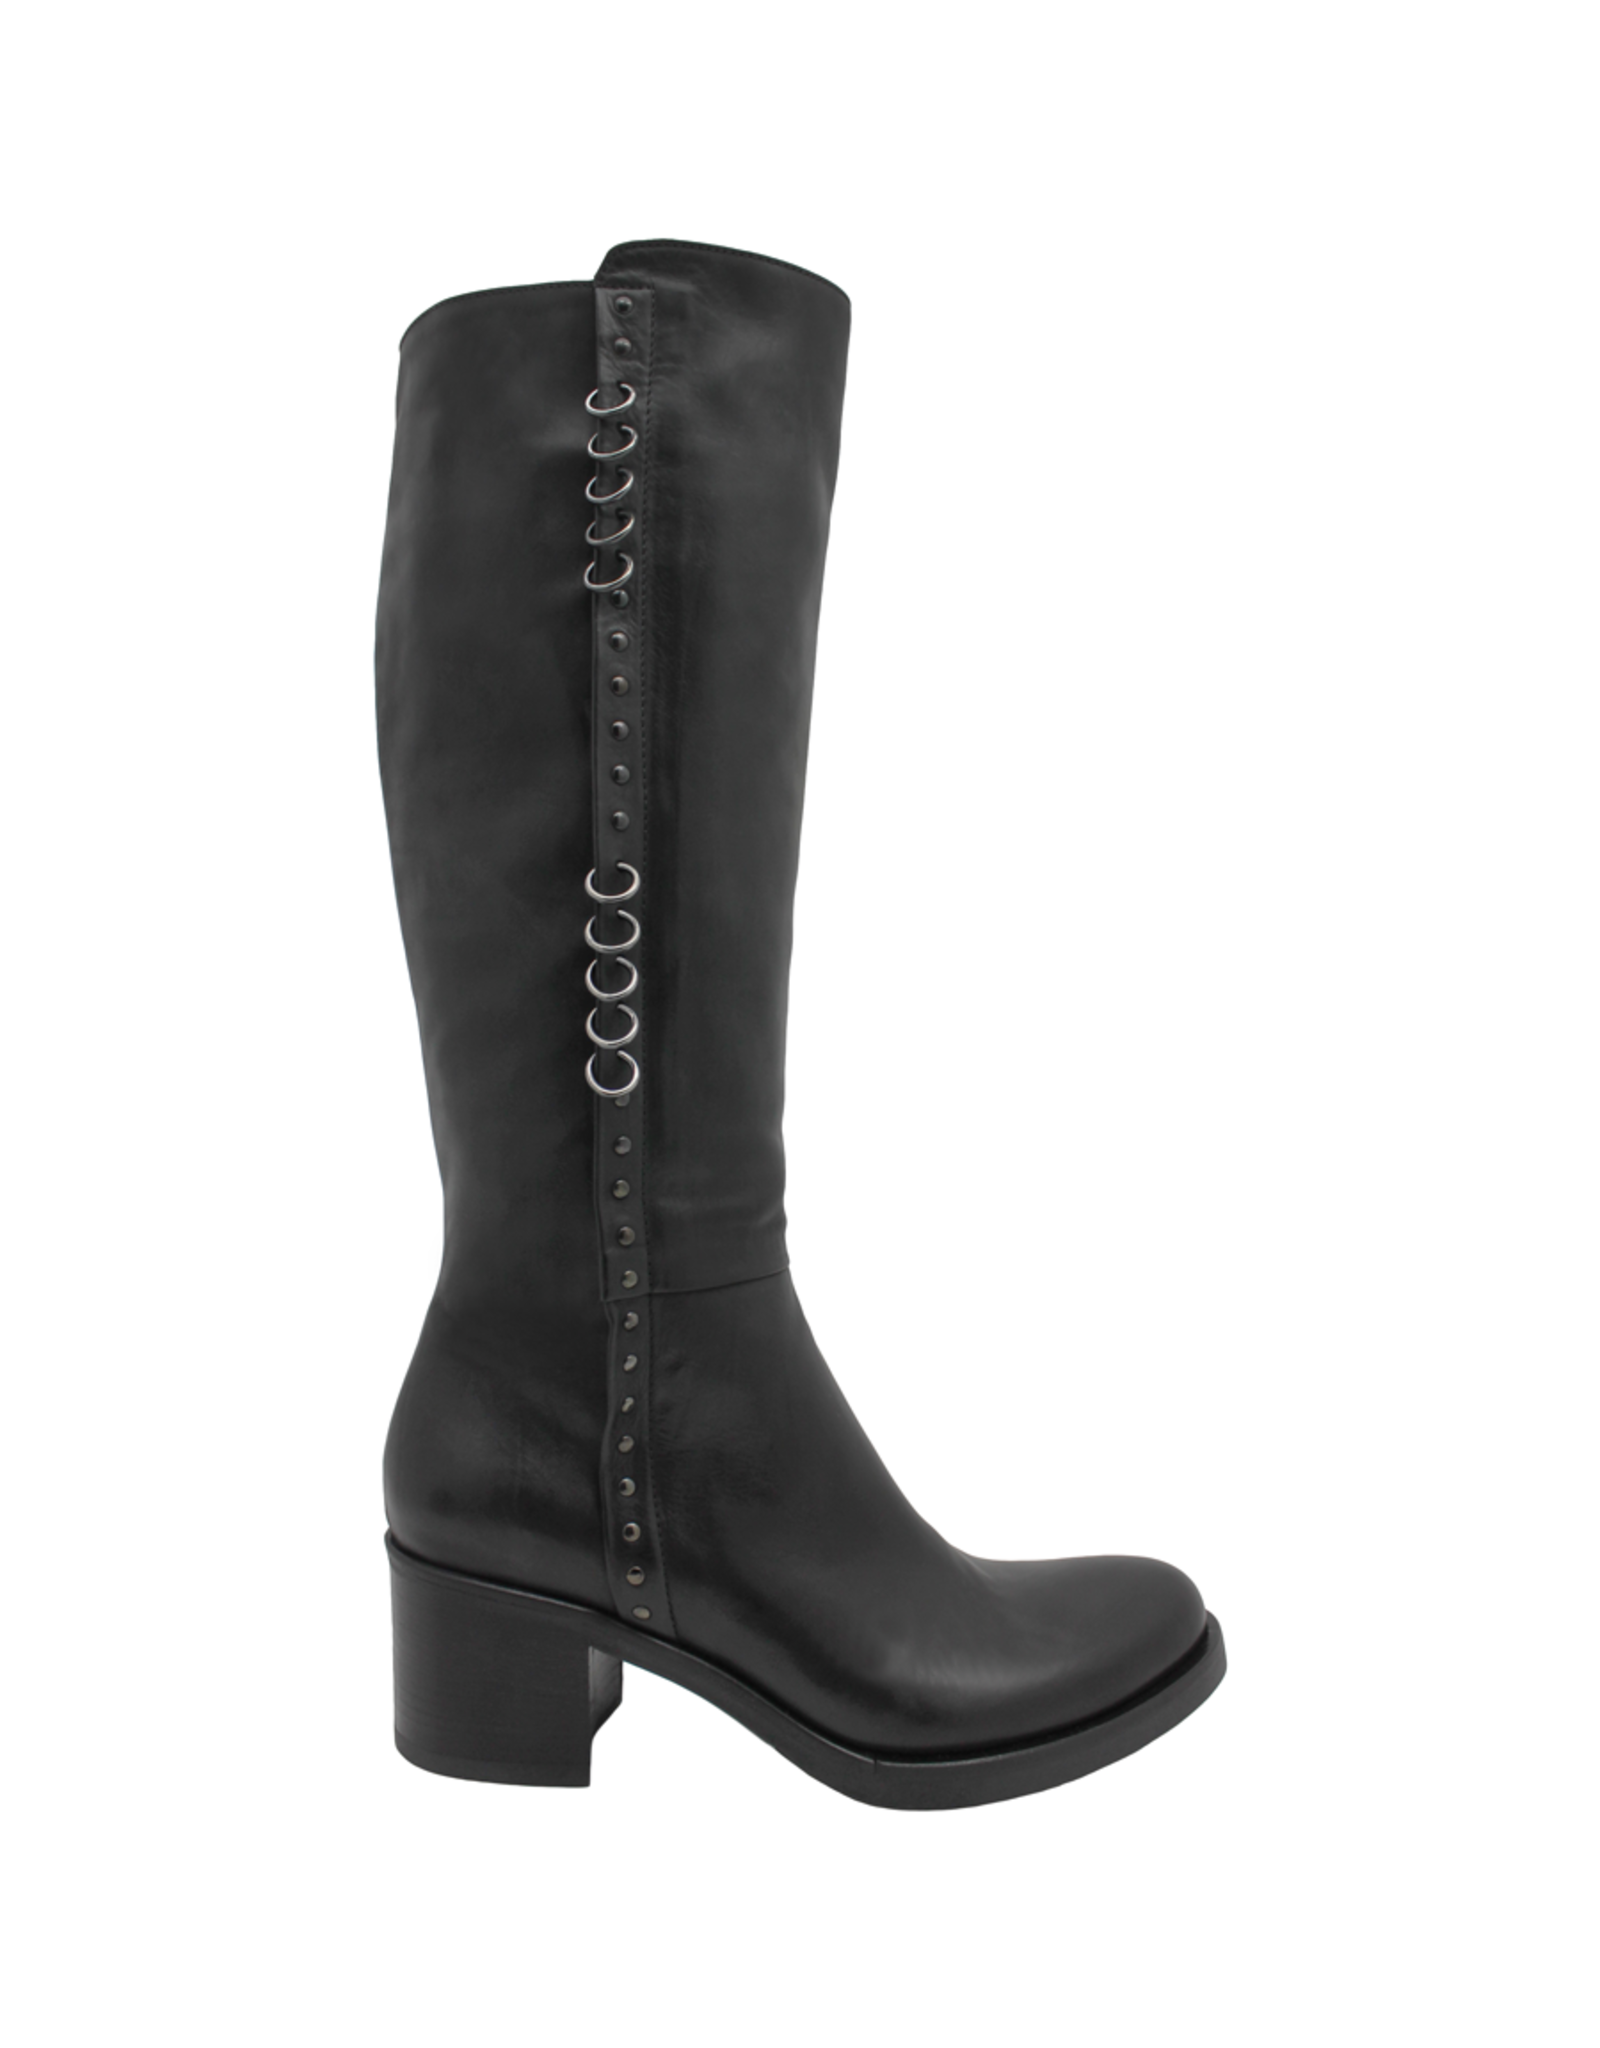 Now Now Black Calf Knee Boot With Pierced Rings  6012